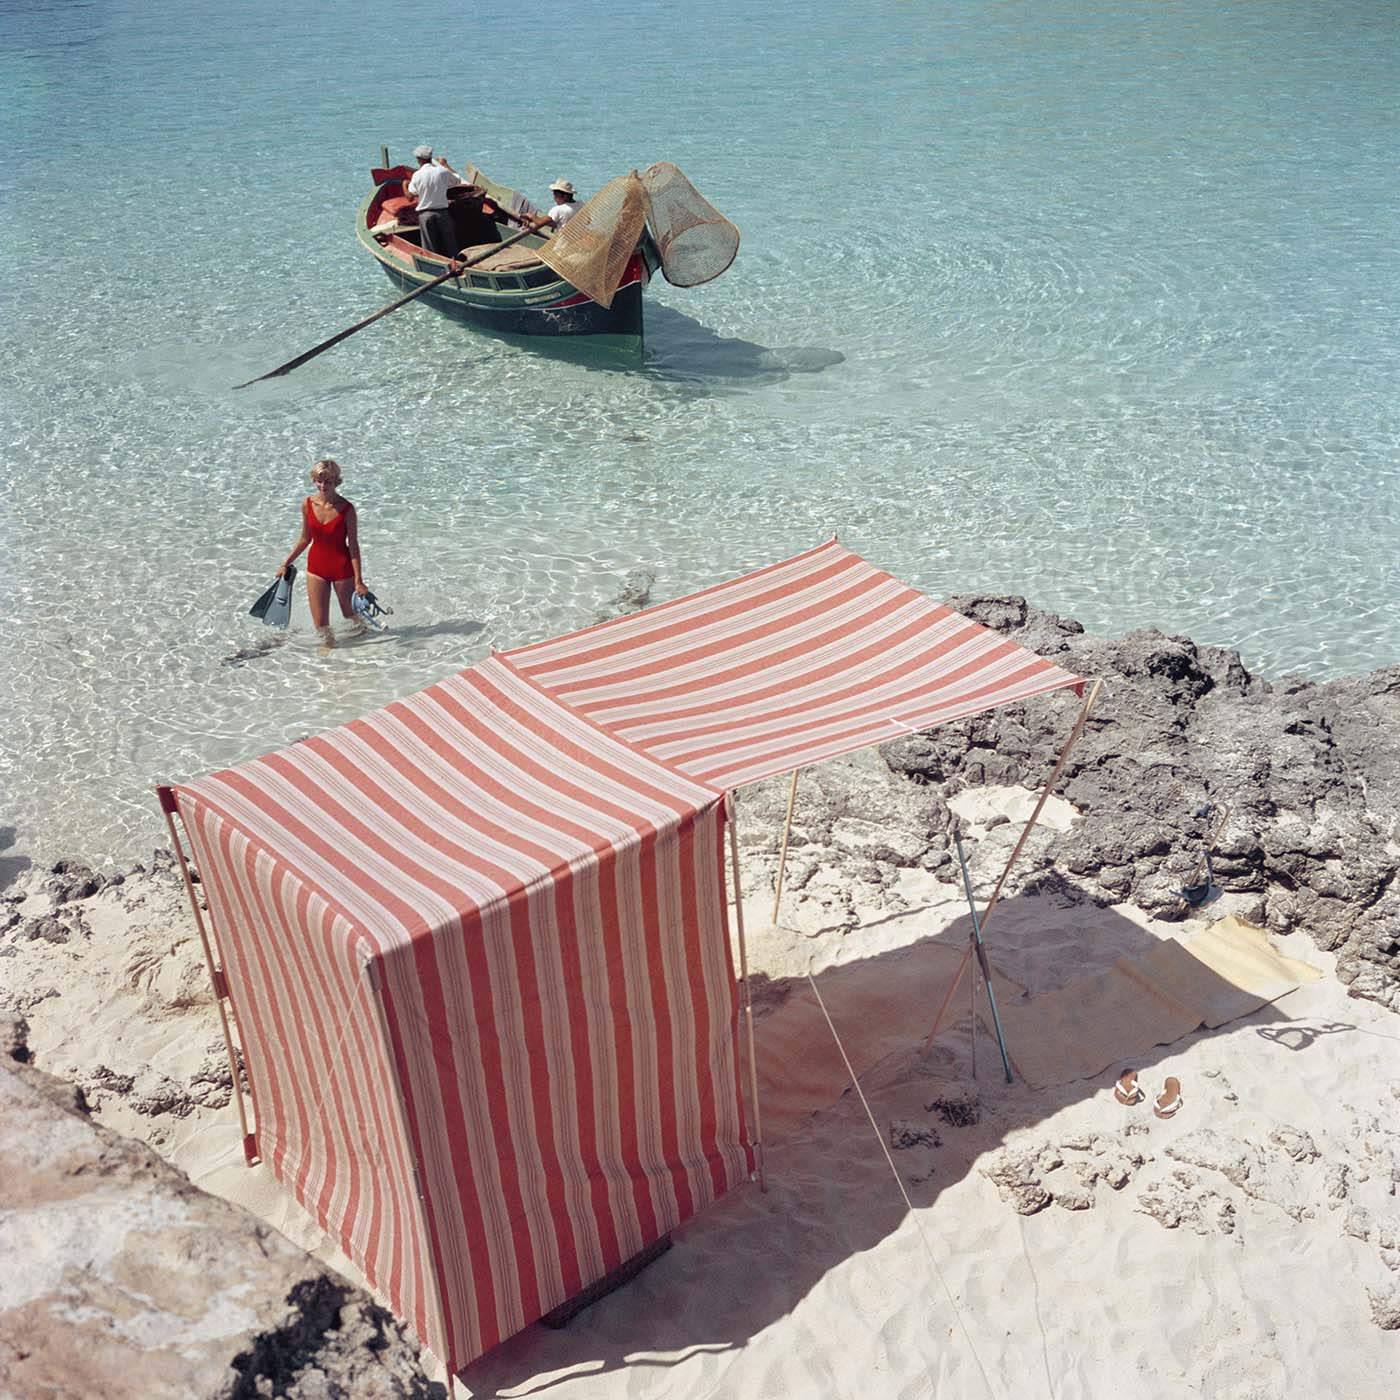 file this under places we'd rather be! photo:  slim Aarons